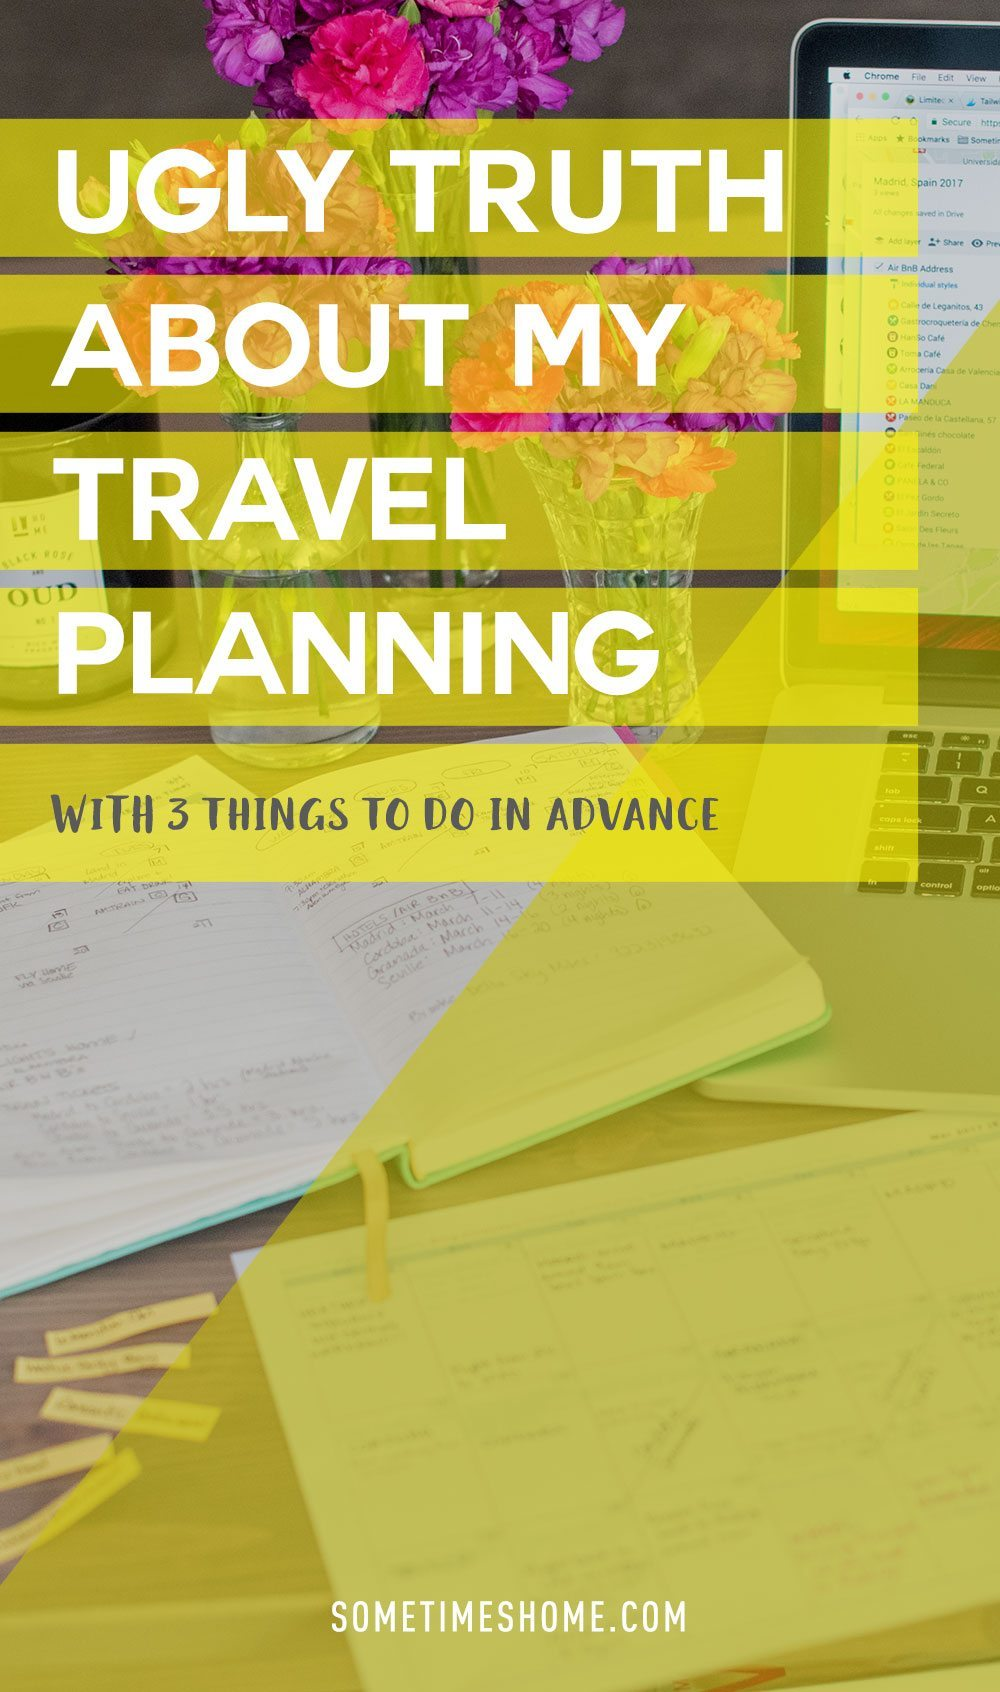 The Ugly Truth About Travel Planning on Sometimes Home travel blog. Why it's okay to not plan everything in advance.